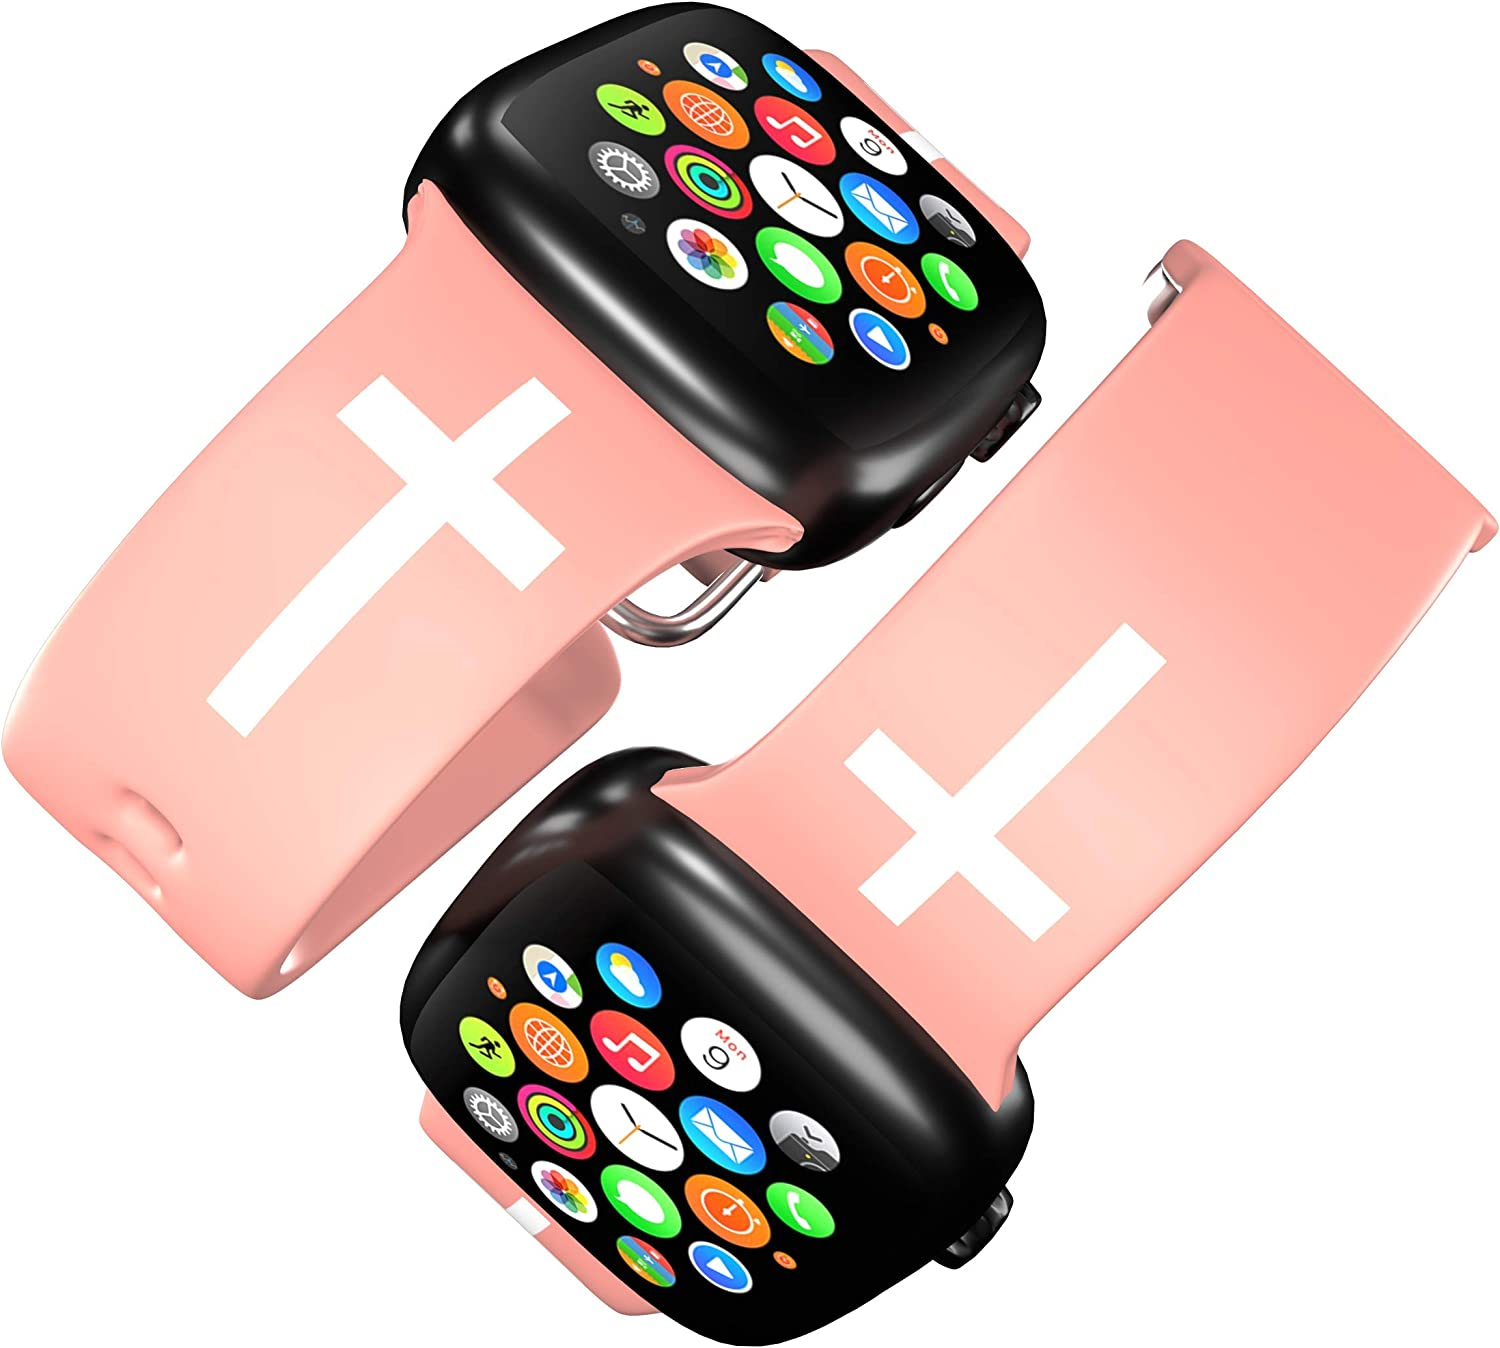 FaithSign 42-44 mm Apple Watch Compatible Band with Bible Verse - Christian Cross Religious Print - Smart Watch Wristband for Men, Women - Breathable Strap for Fitness, Sport, Casual Wear - Pink